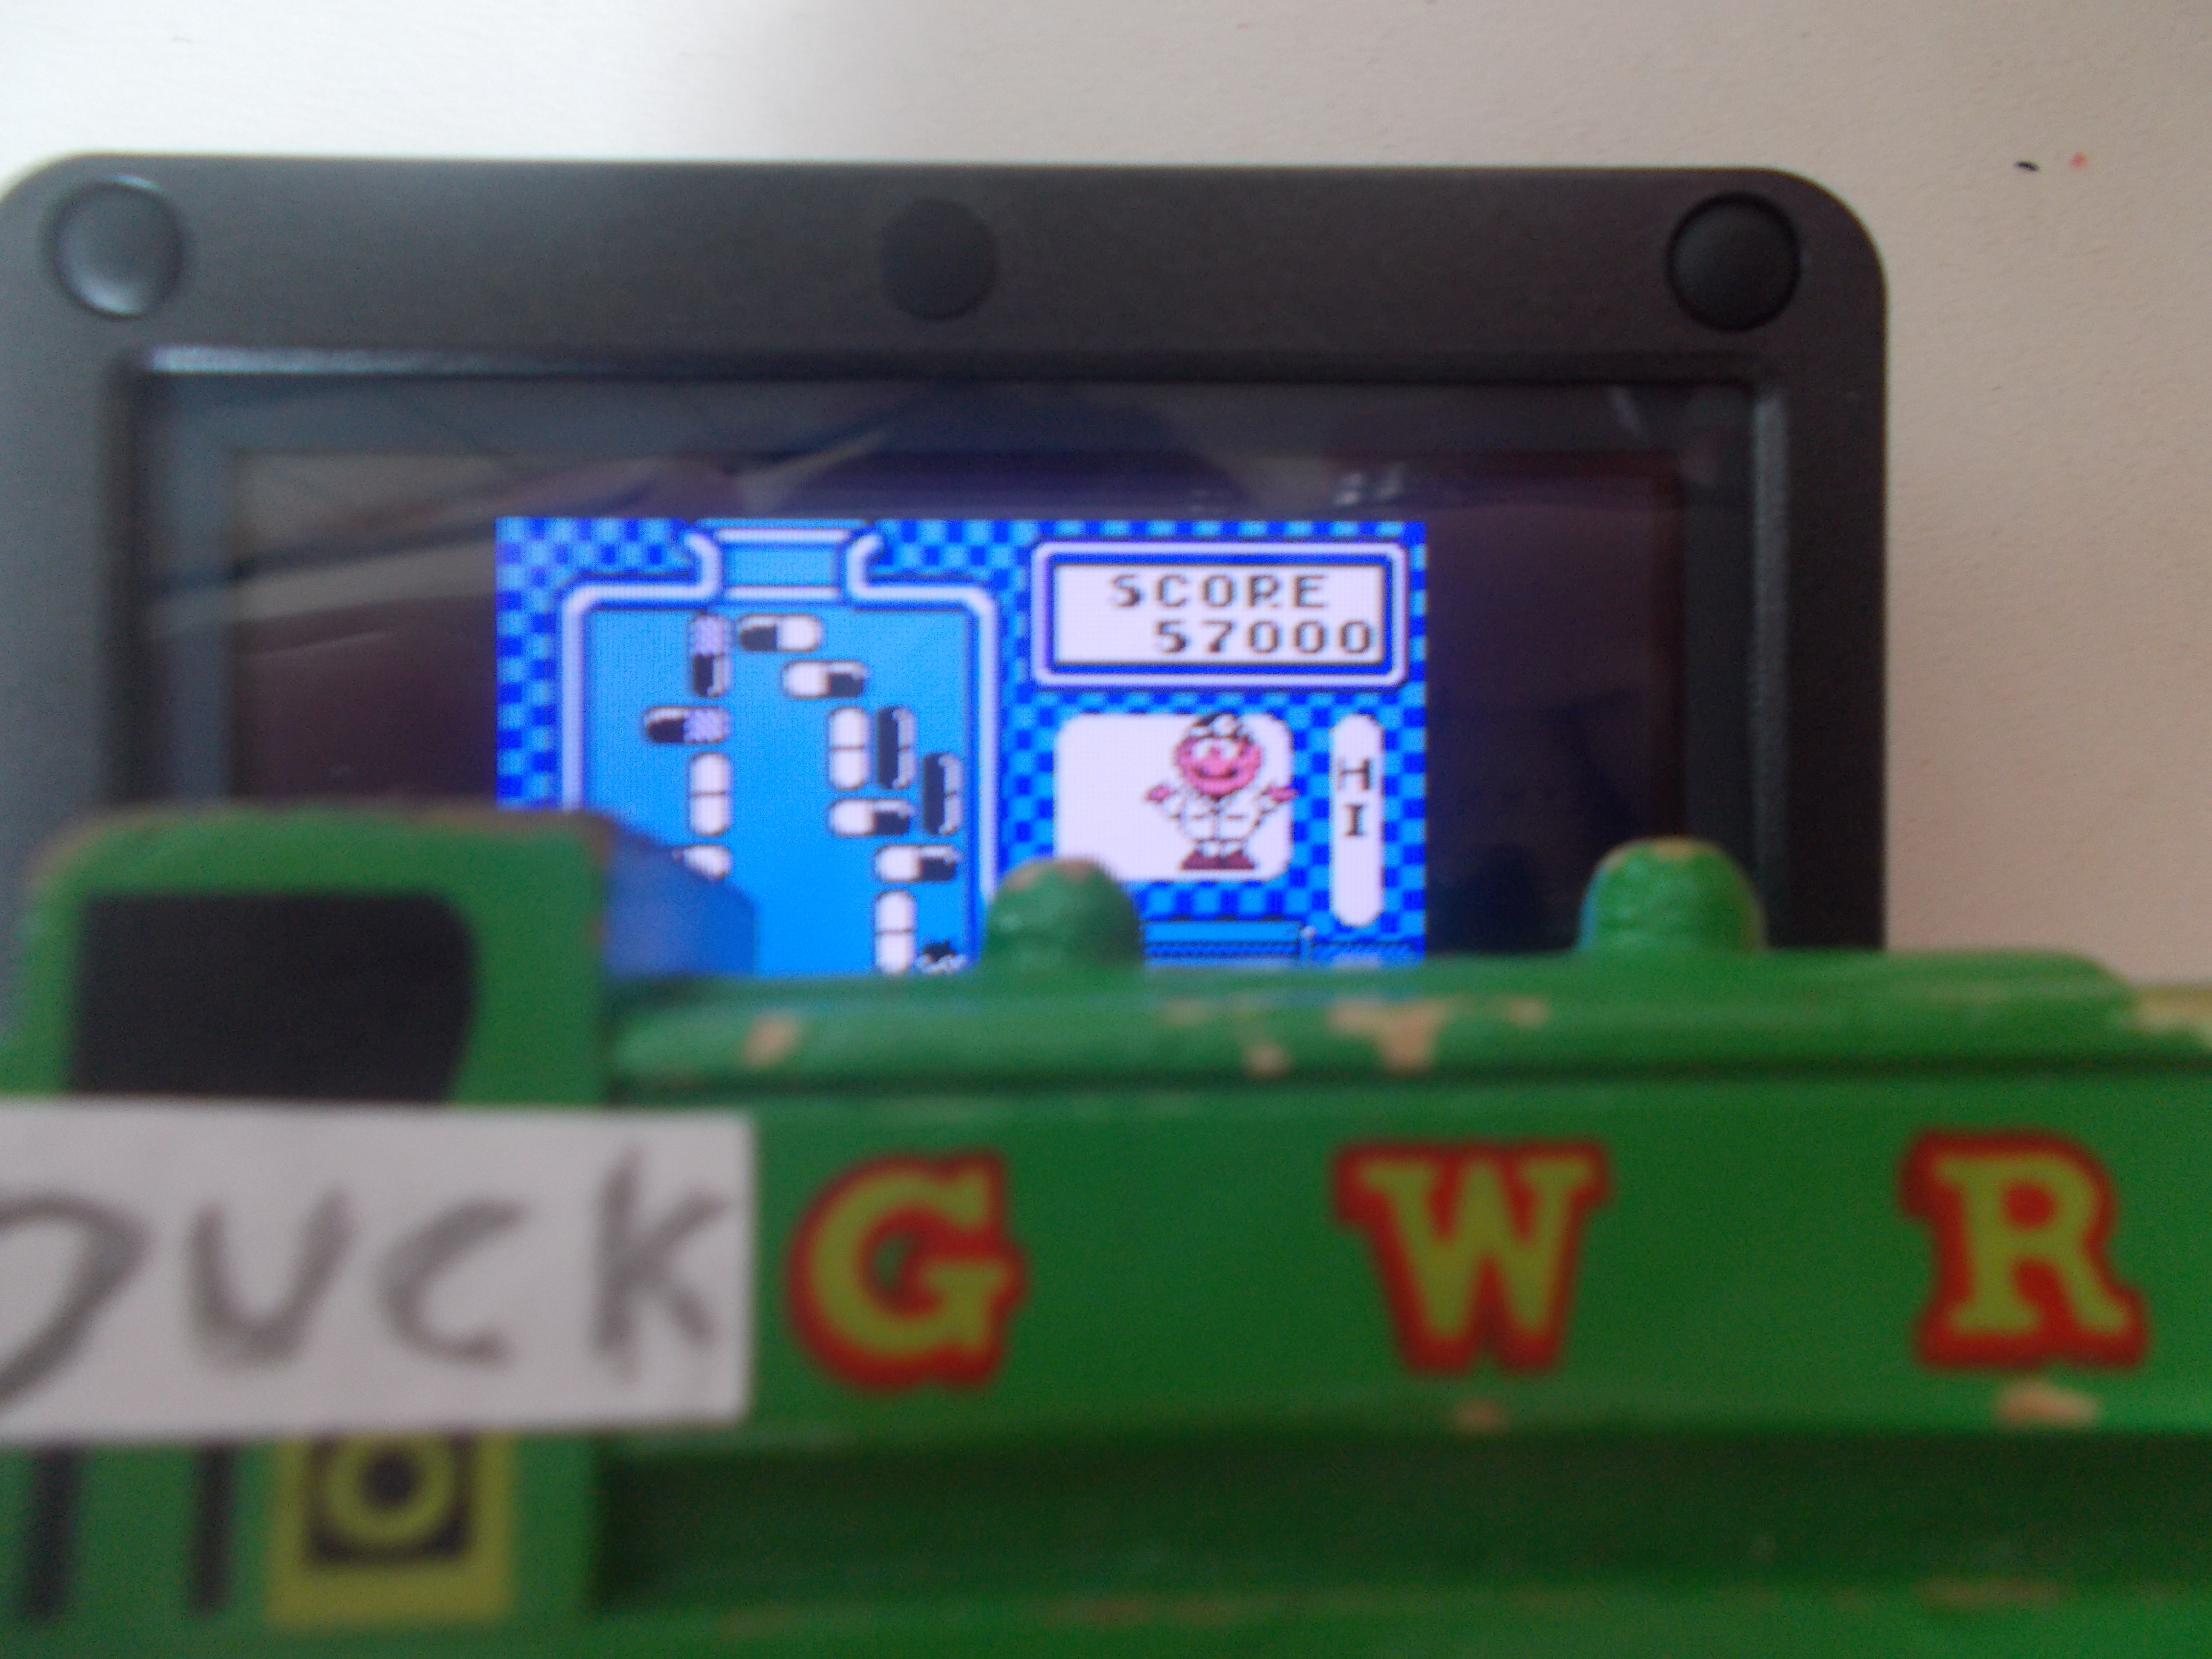 DuckGWR: Dr. Mario [High] (Game Boy) 57,000 points on 2014-08-03 17:38:05